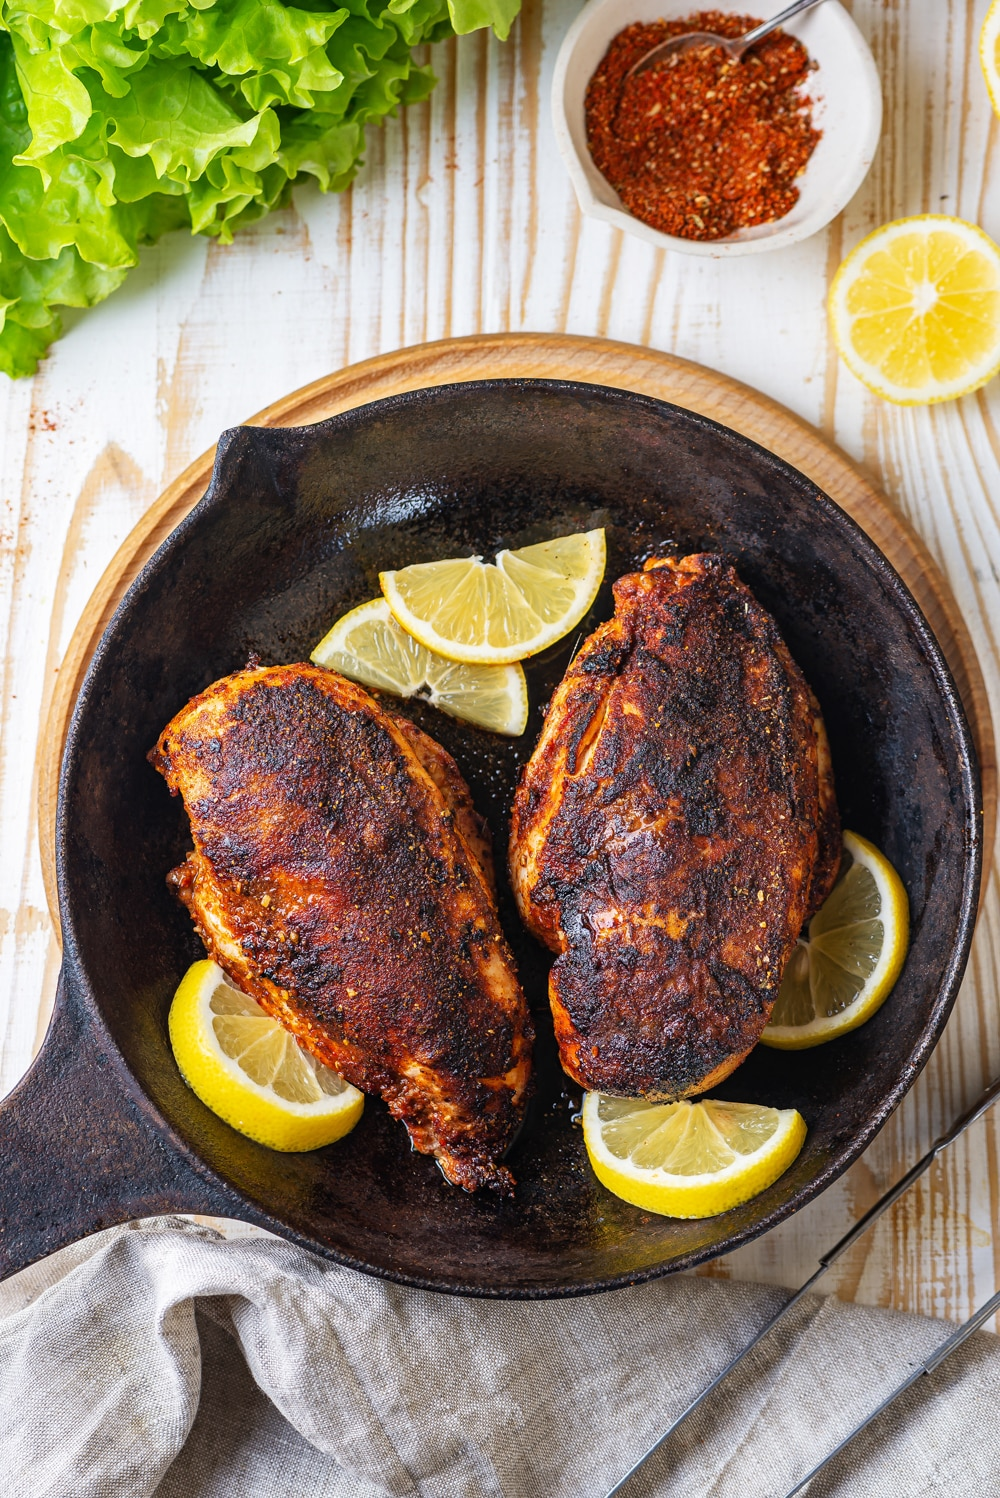 An overhead view of two whole pieces of cooked blackened chicken in a skillet. Five lemon slices are surrounding the chicken in the skillet. The skillet is on a wooden saucer. There is a white bowl of seasonings behind the skillet and everything is on a wood table.